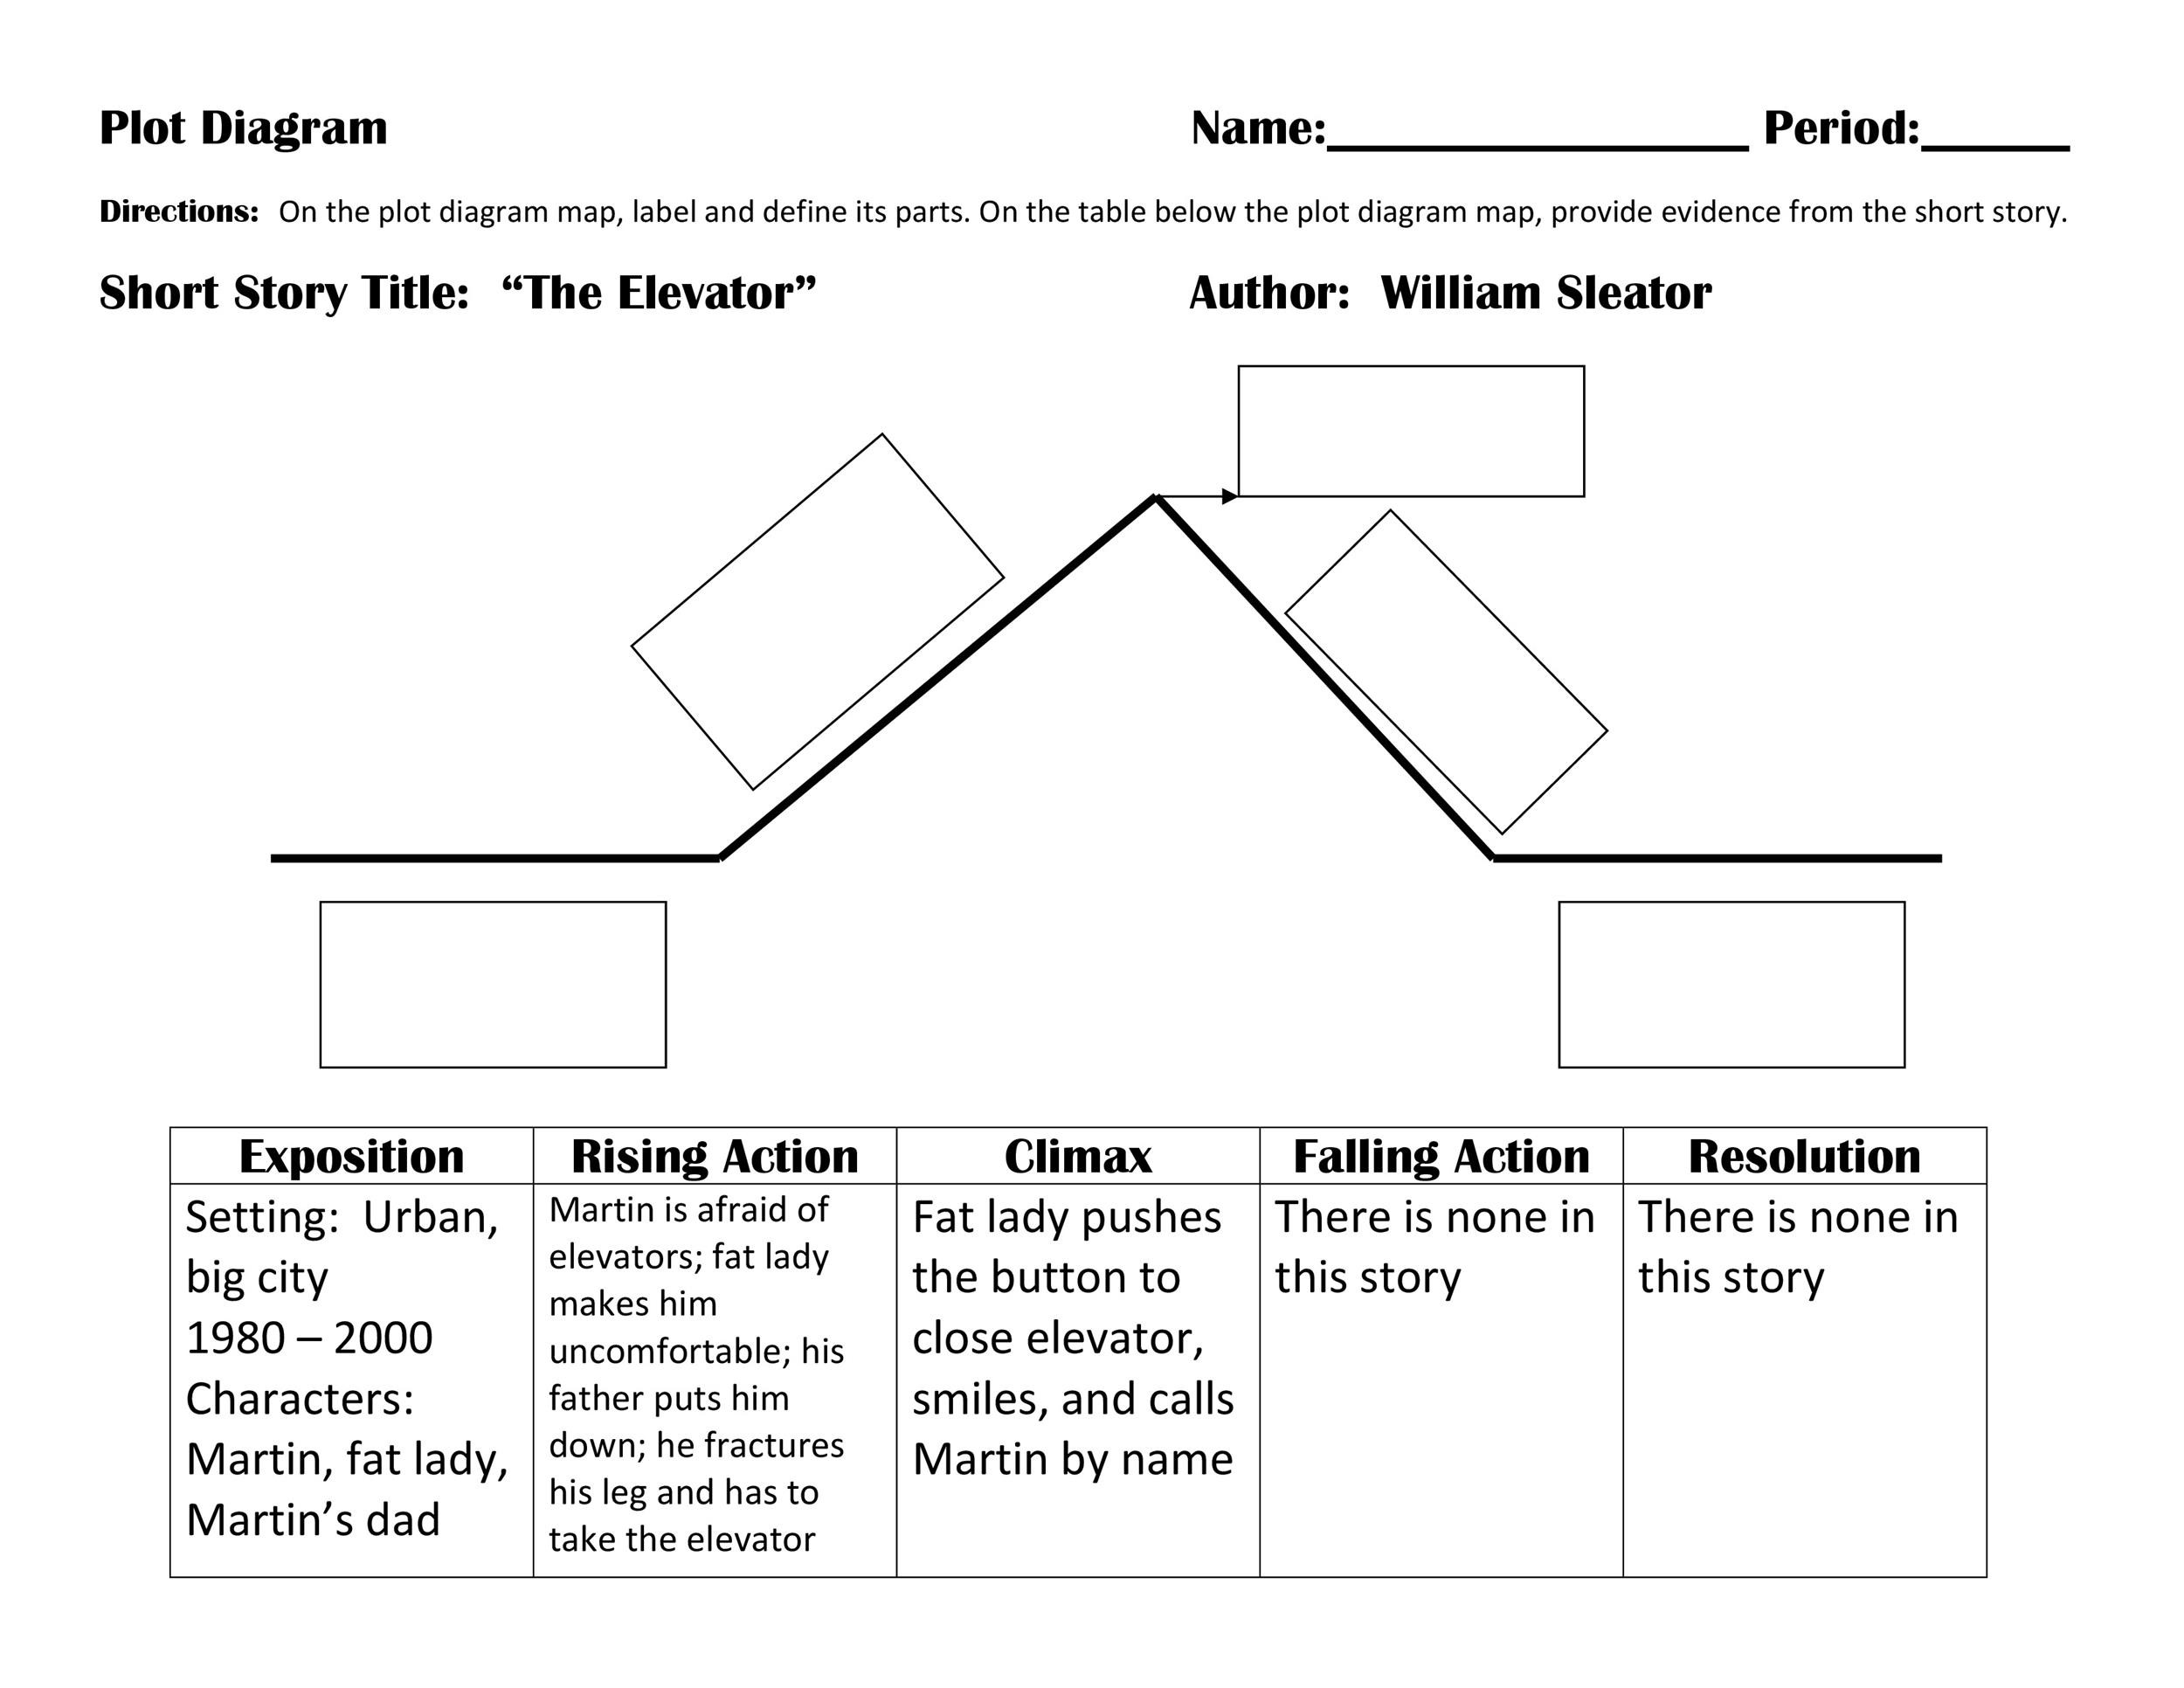 Plot Diagram Template With Definitions